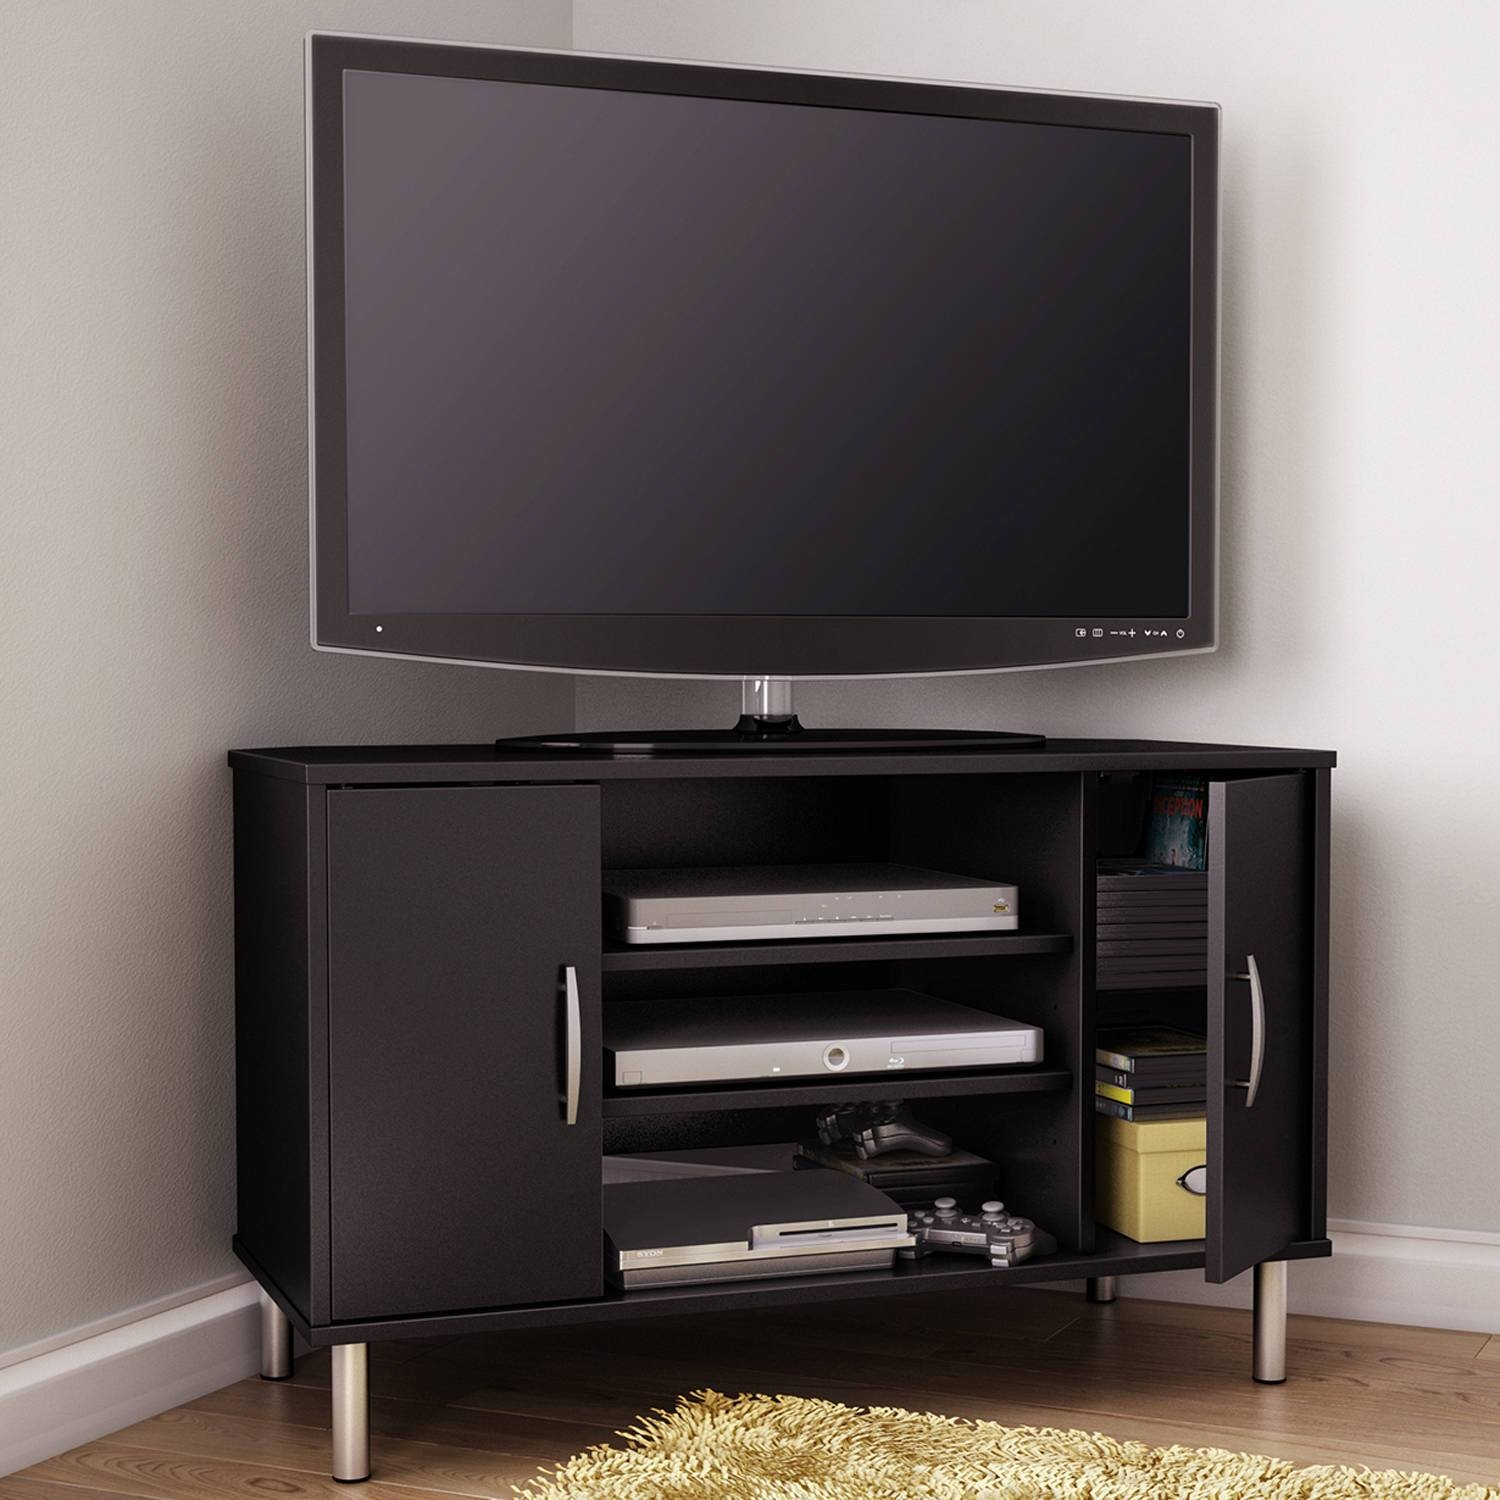 15 Best Ideas Of Black Corner Tv Cabinets